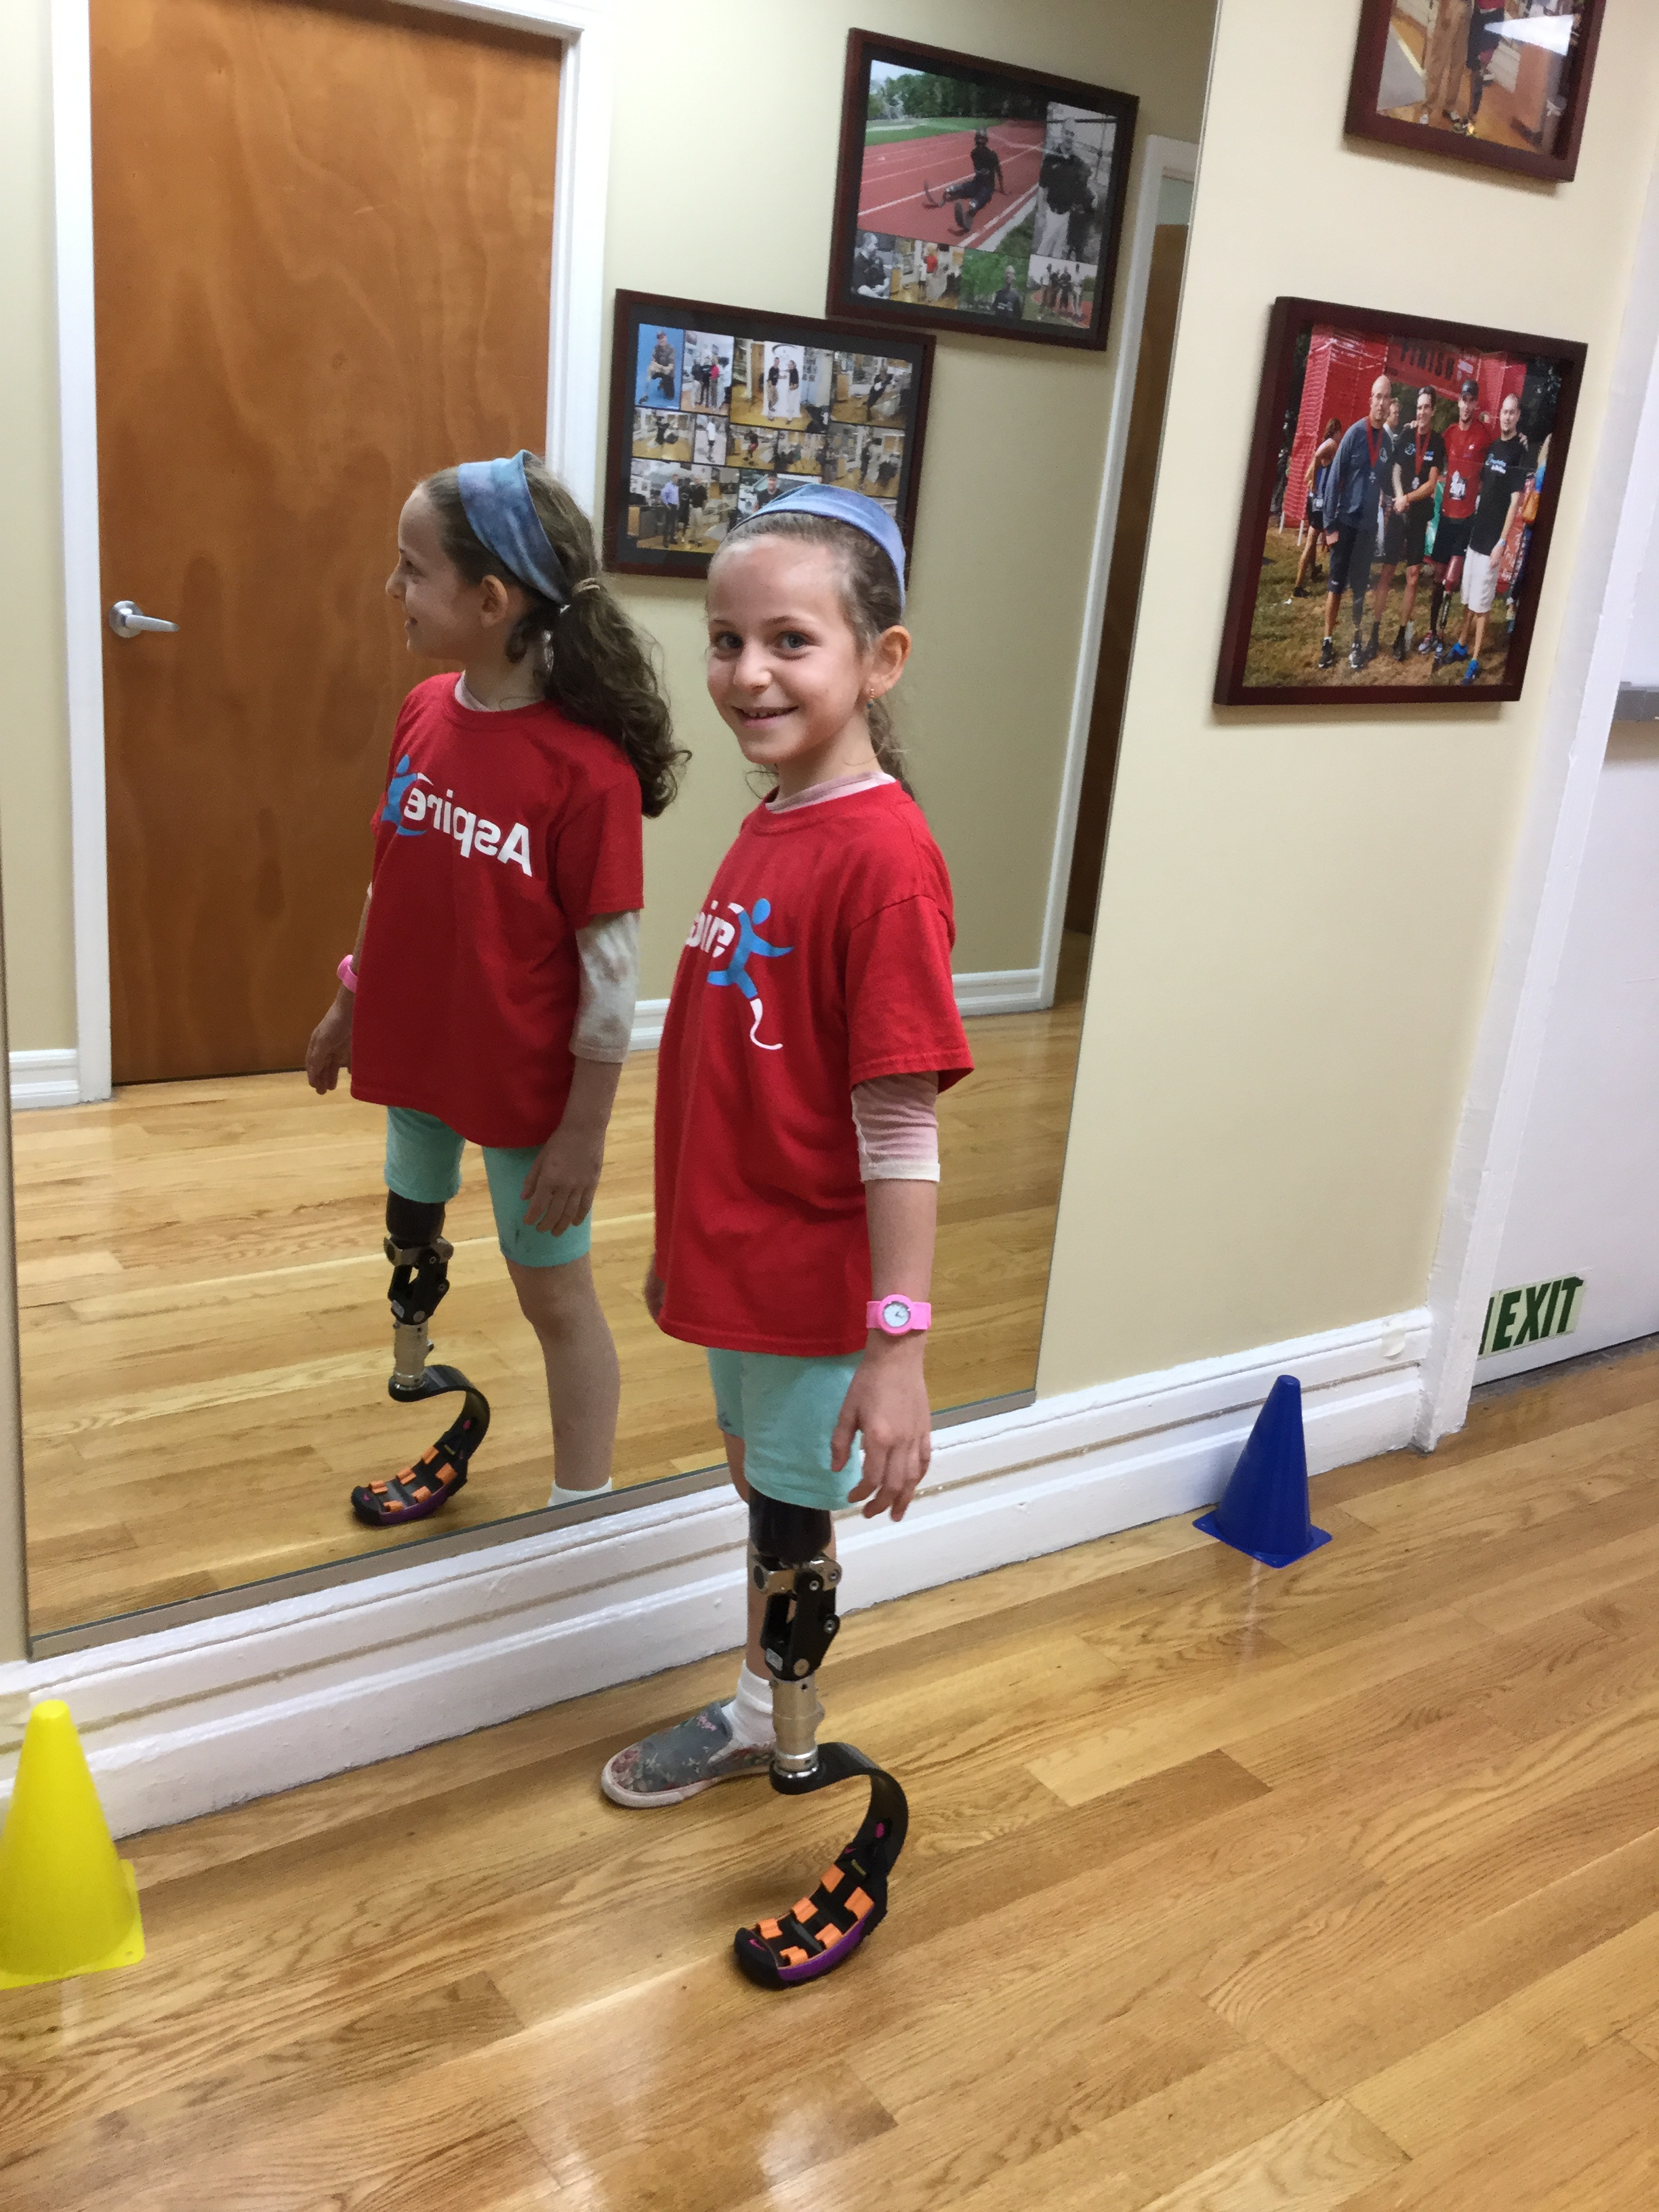 Ruth - Ruth is a congenital amputee who was born with PFFD (Proximal Femoral Focal Deficiency) ASPIRE has provided Ruth with a running prosthesis.